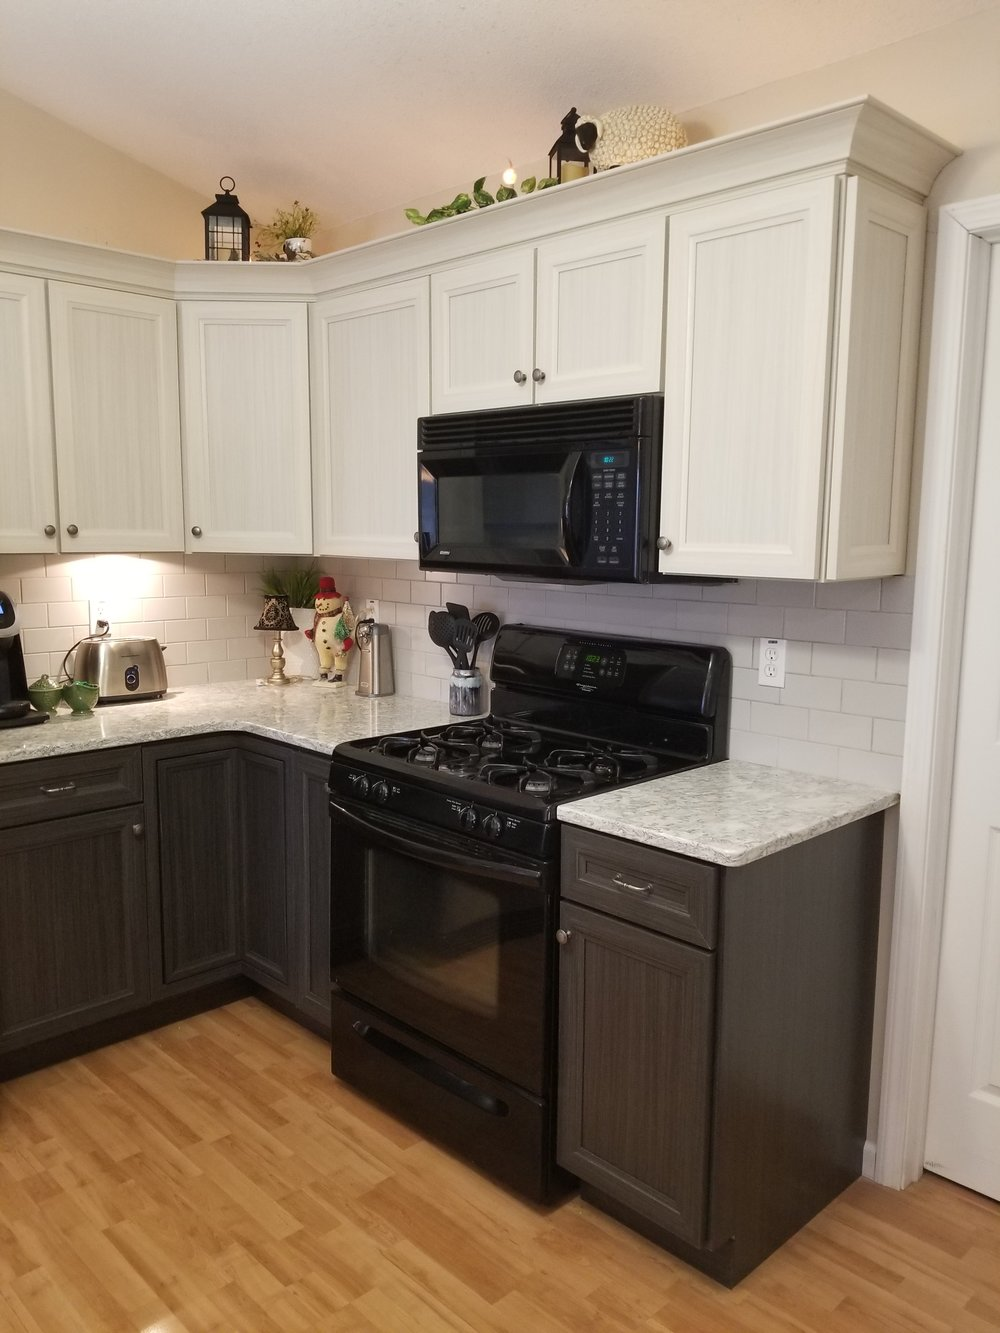 Homeowner fell in-love with the darker color doors loving the way it contrasted with their countertops.  To keep the kitchen from looking too dark they went lighter for the wall cabinets.